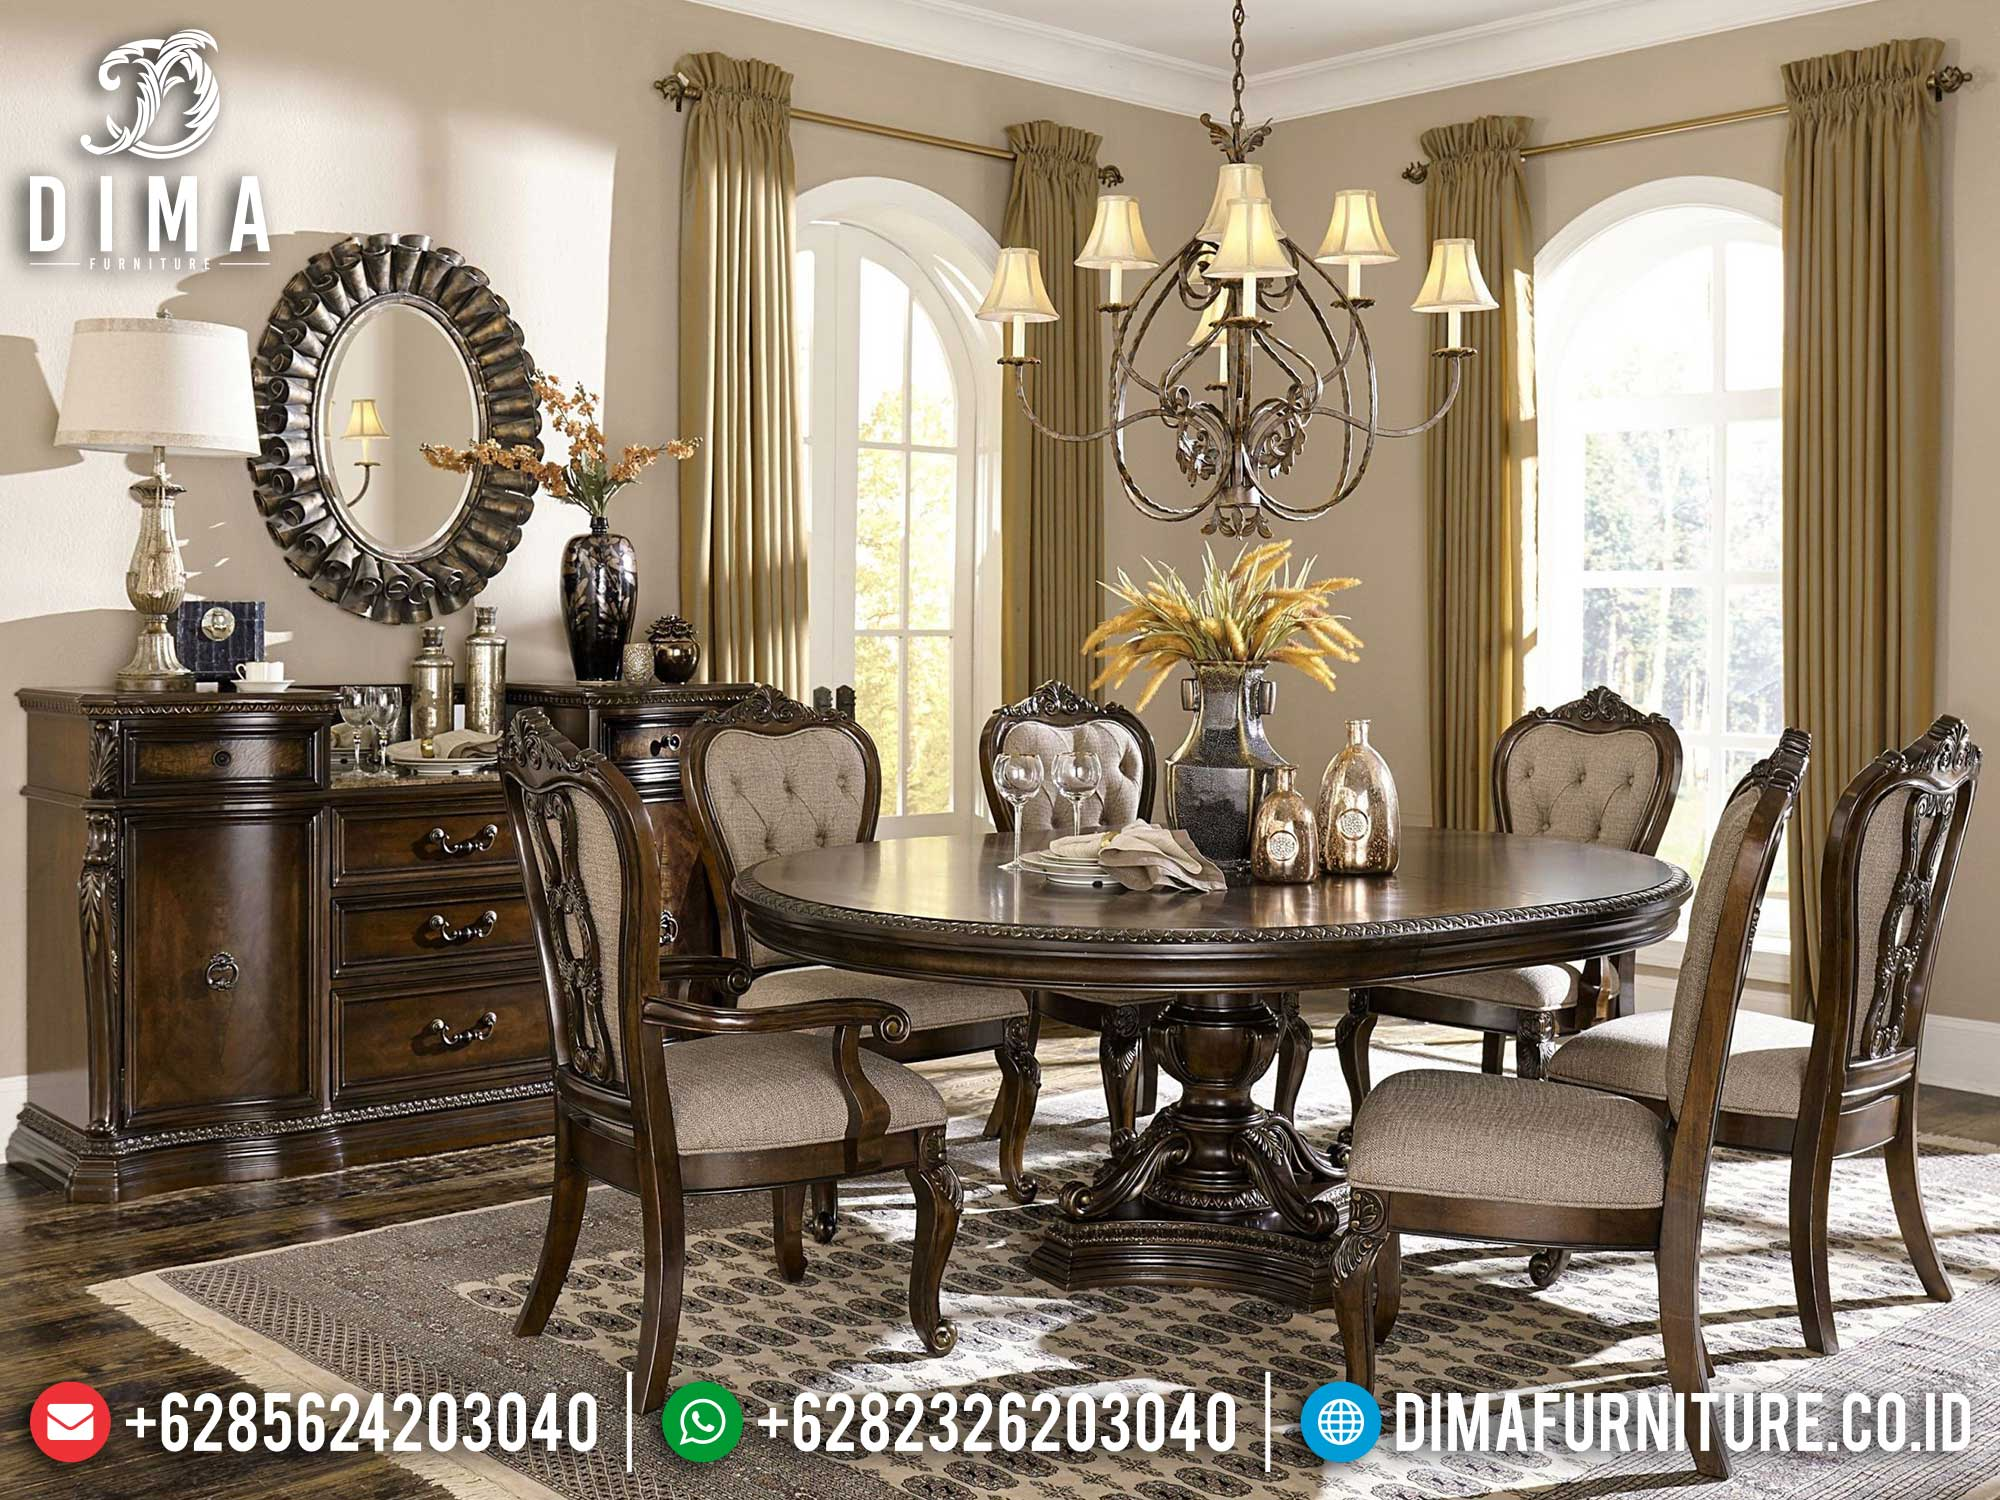 Meja Makan Minimalis Chloe High Class Design Quality Furniture Jepara ST-1236